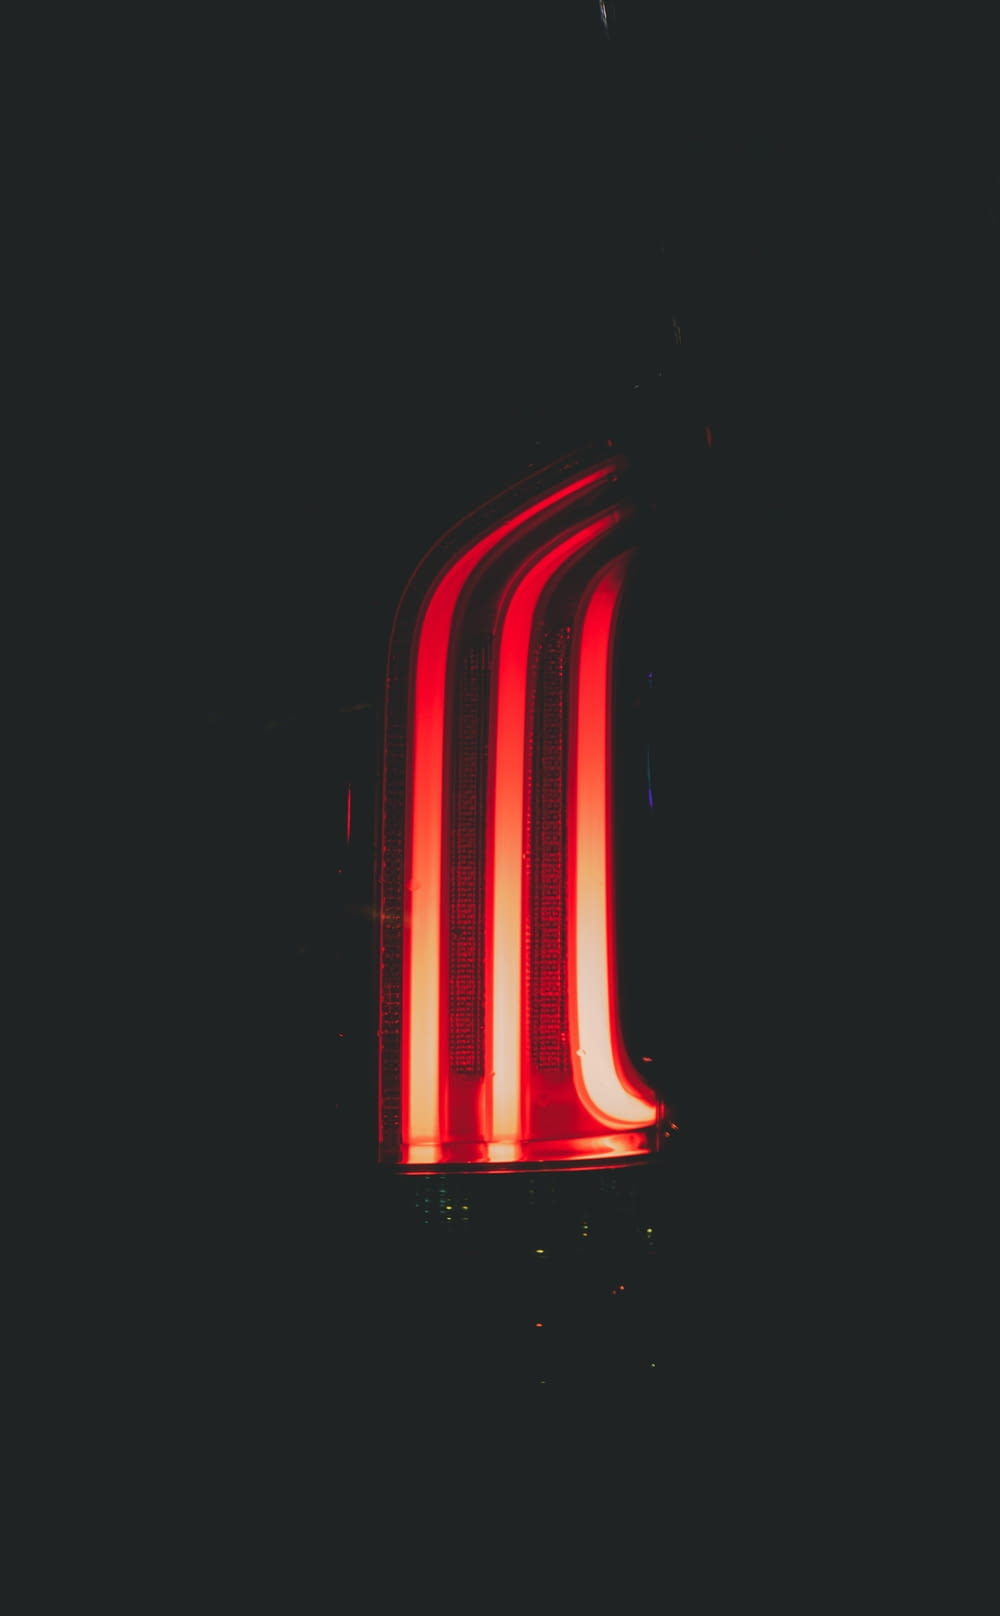 red and white striped light